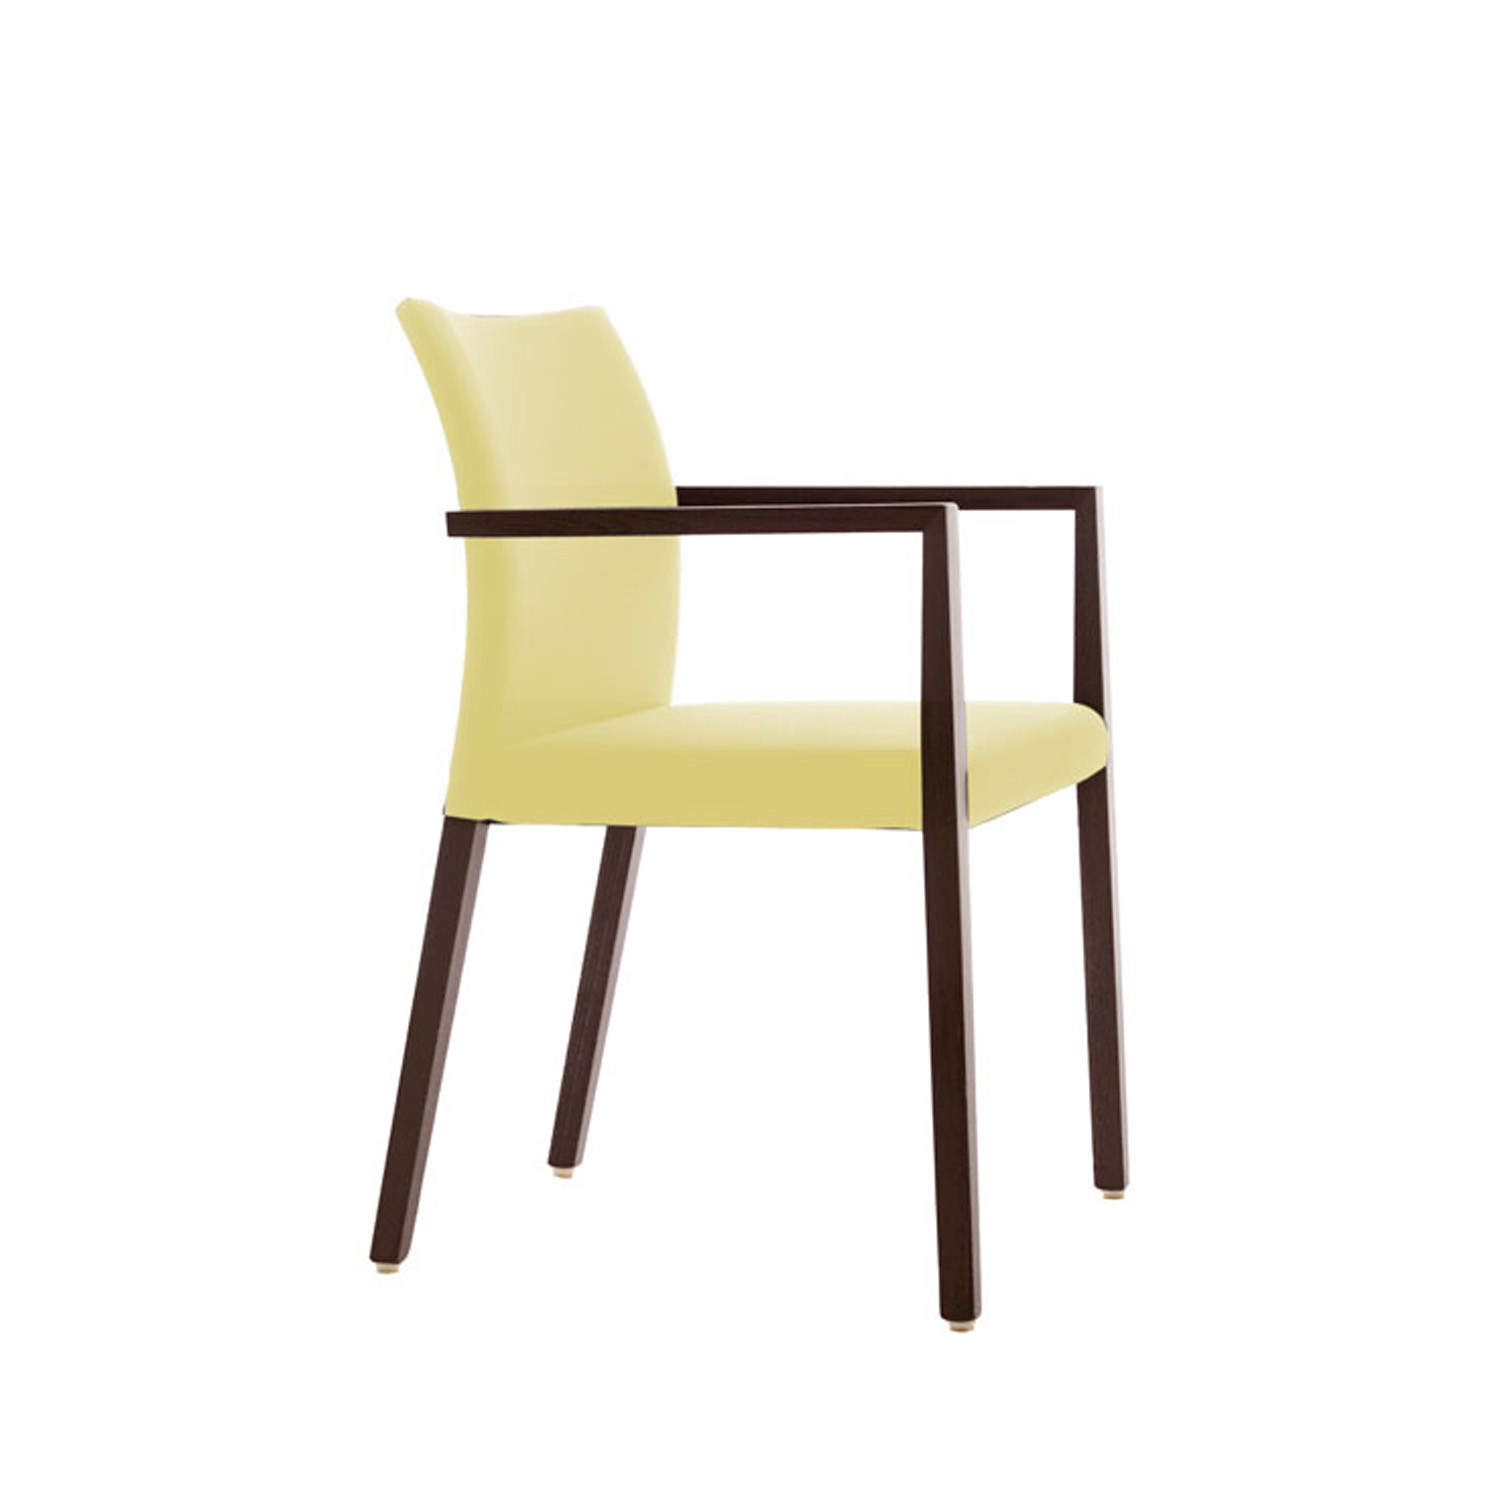 S15 Armchair by Wiesner Hager